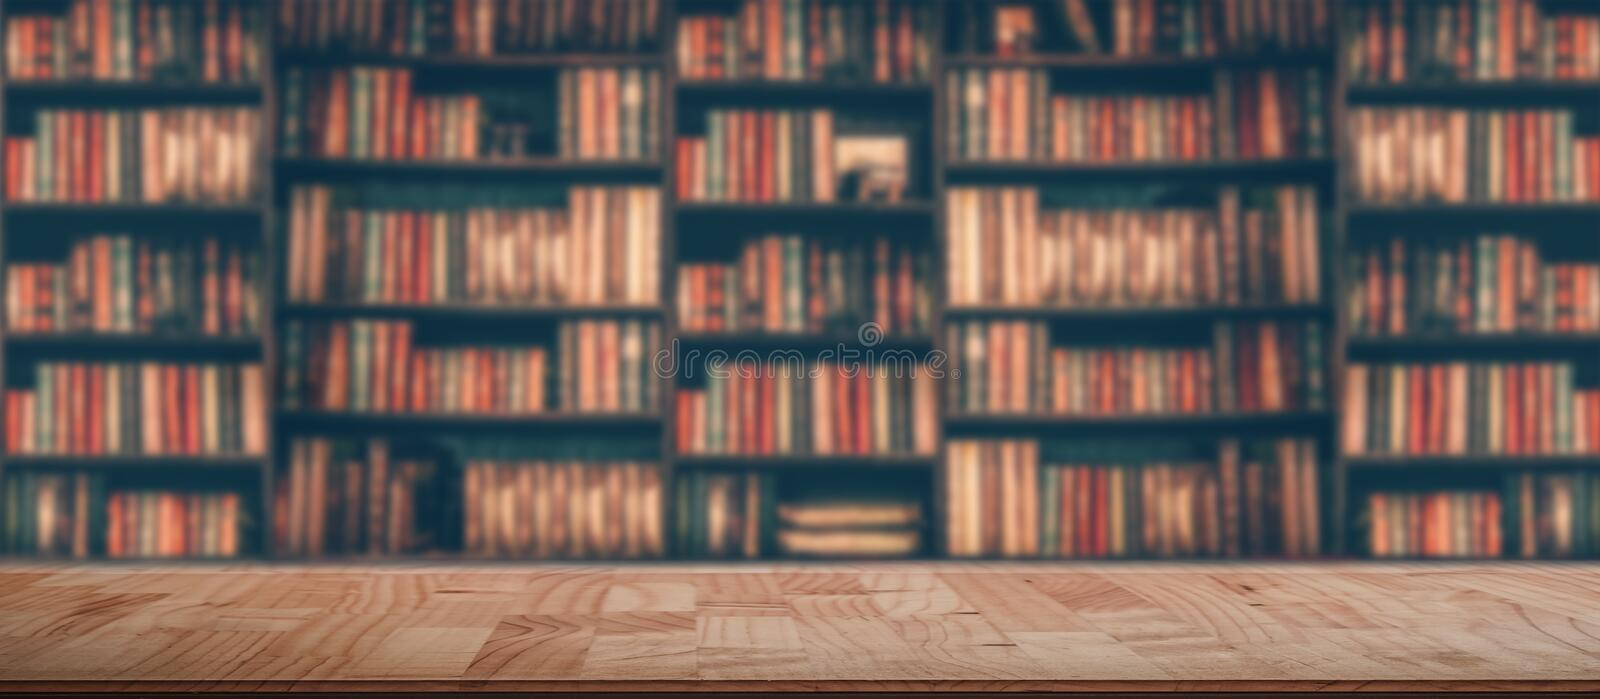 Wooden table in blurred Image Many old books on bookshelf in library royalty free stock photos